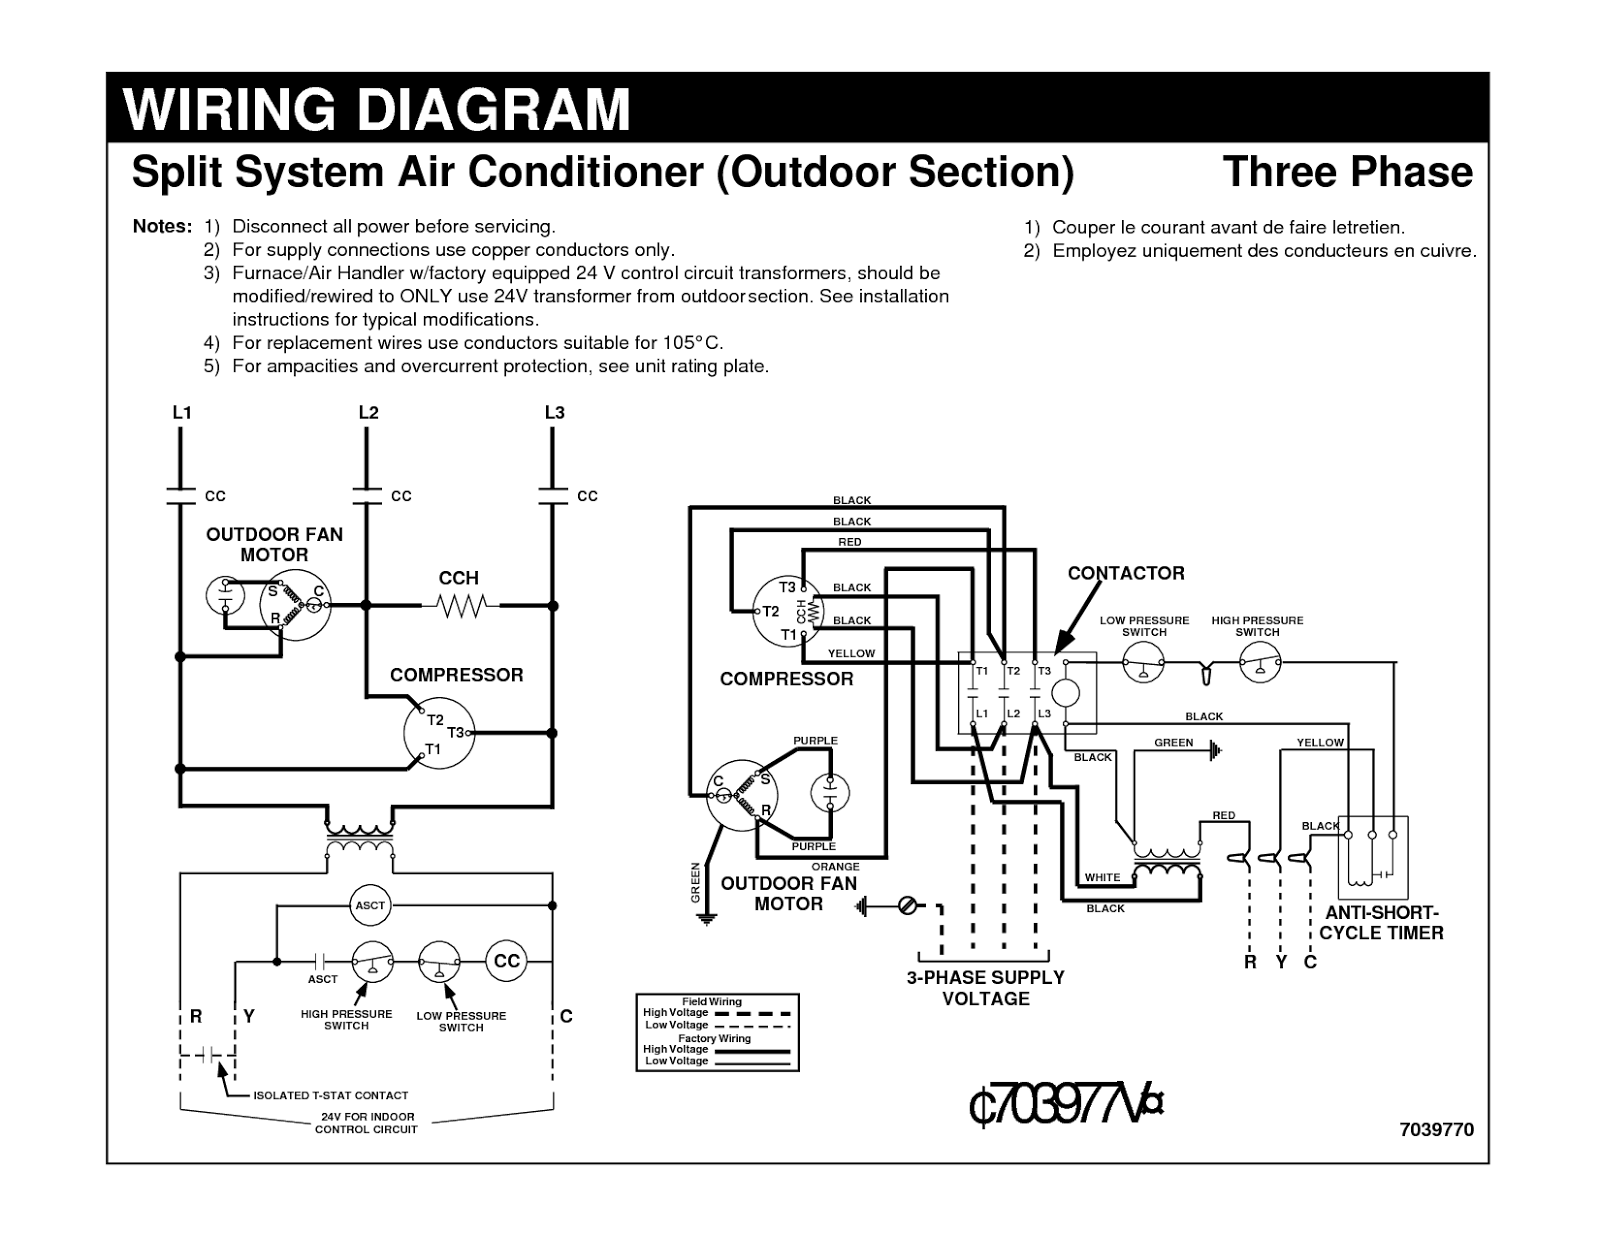 wiring+diagram+in+the+user+manual hvac wiring diagram payne hvac wiring diagrams \u2022 wiring diagrams payne furnace wiring diagram at webbmarketing.co